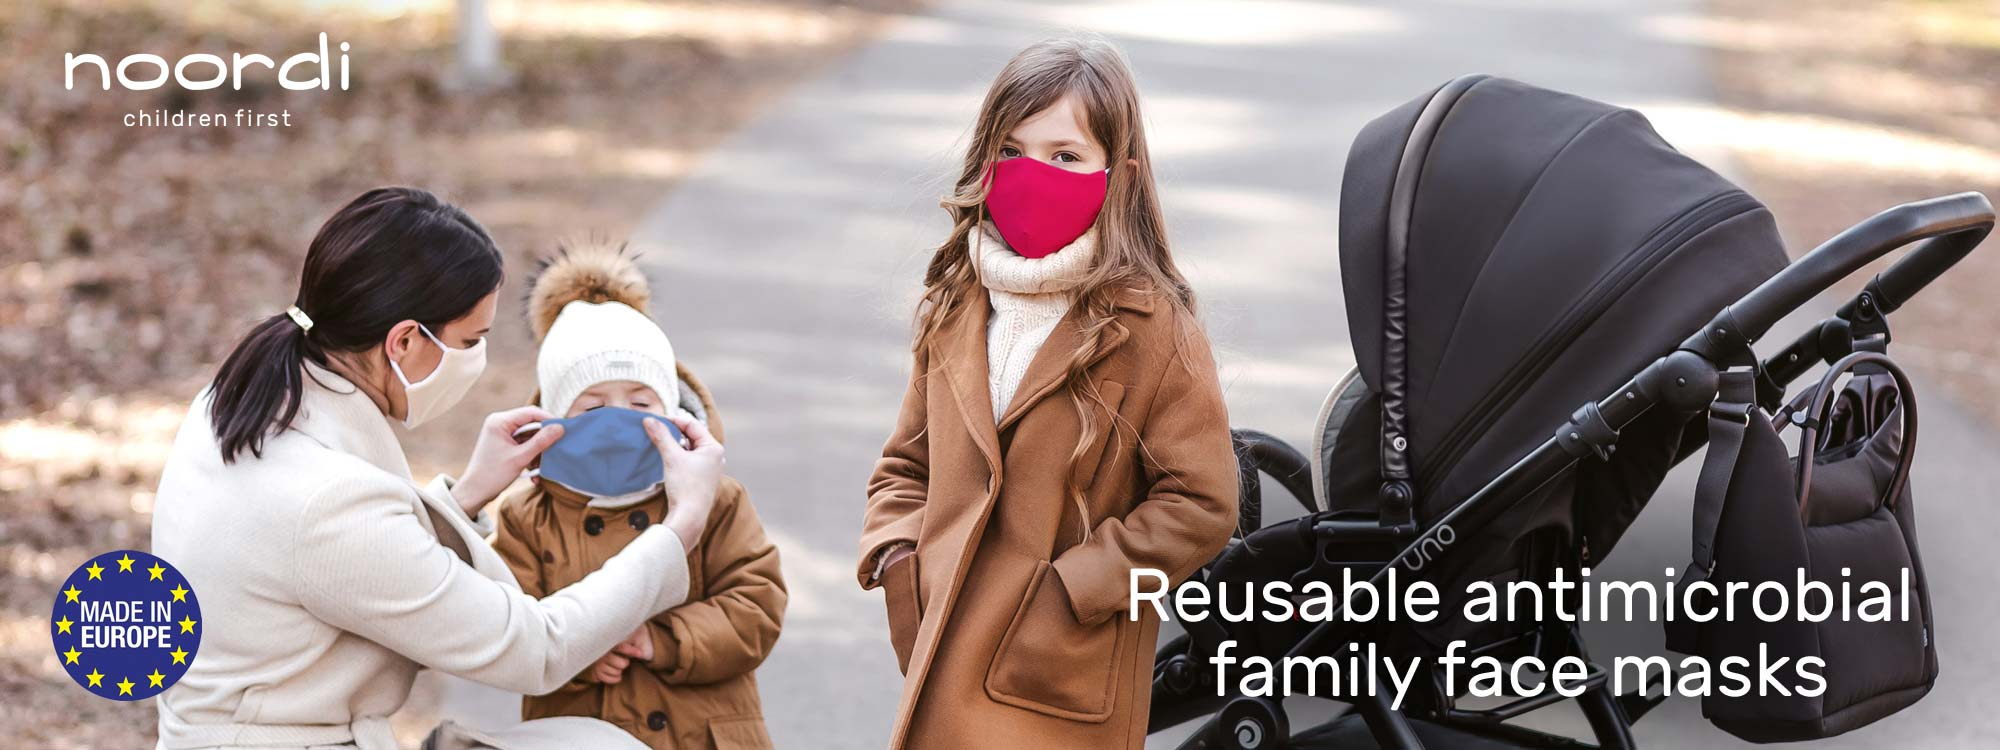 Antimicrobial face masks for family - children first